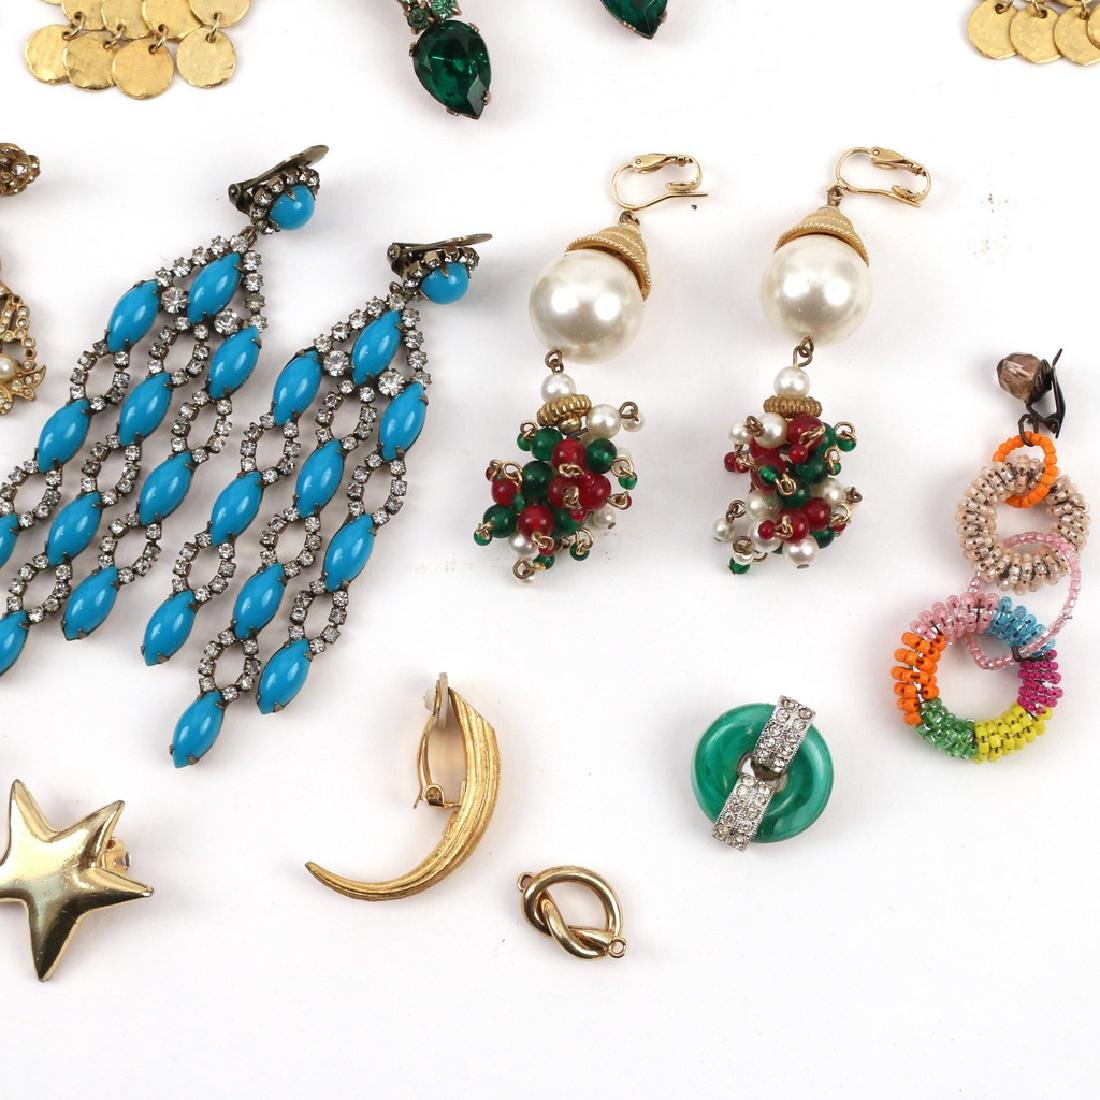 (30pc) MISC. COSTUME DROP & OTHER EARRINGS - 3